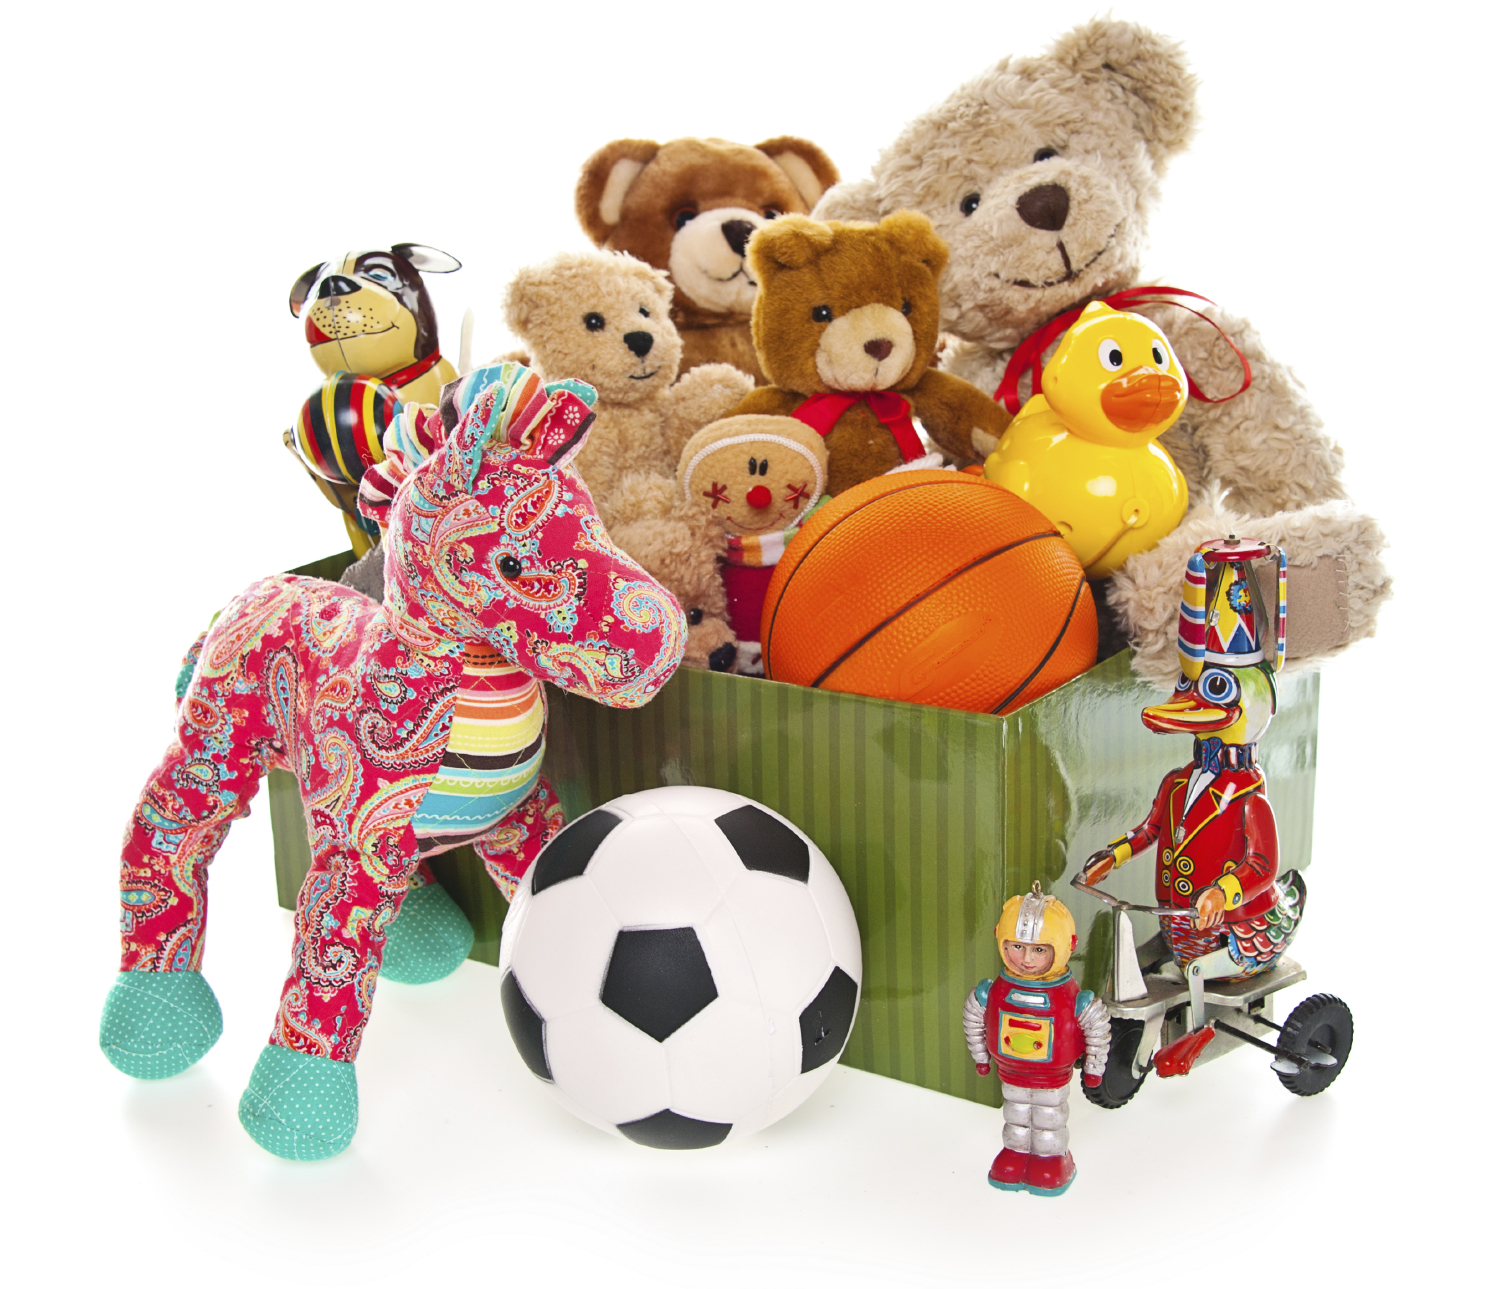 Toys At Christmas : Toy appeal from ward councillor cidc